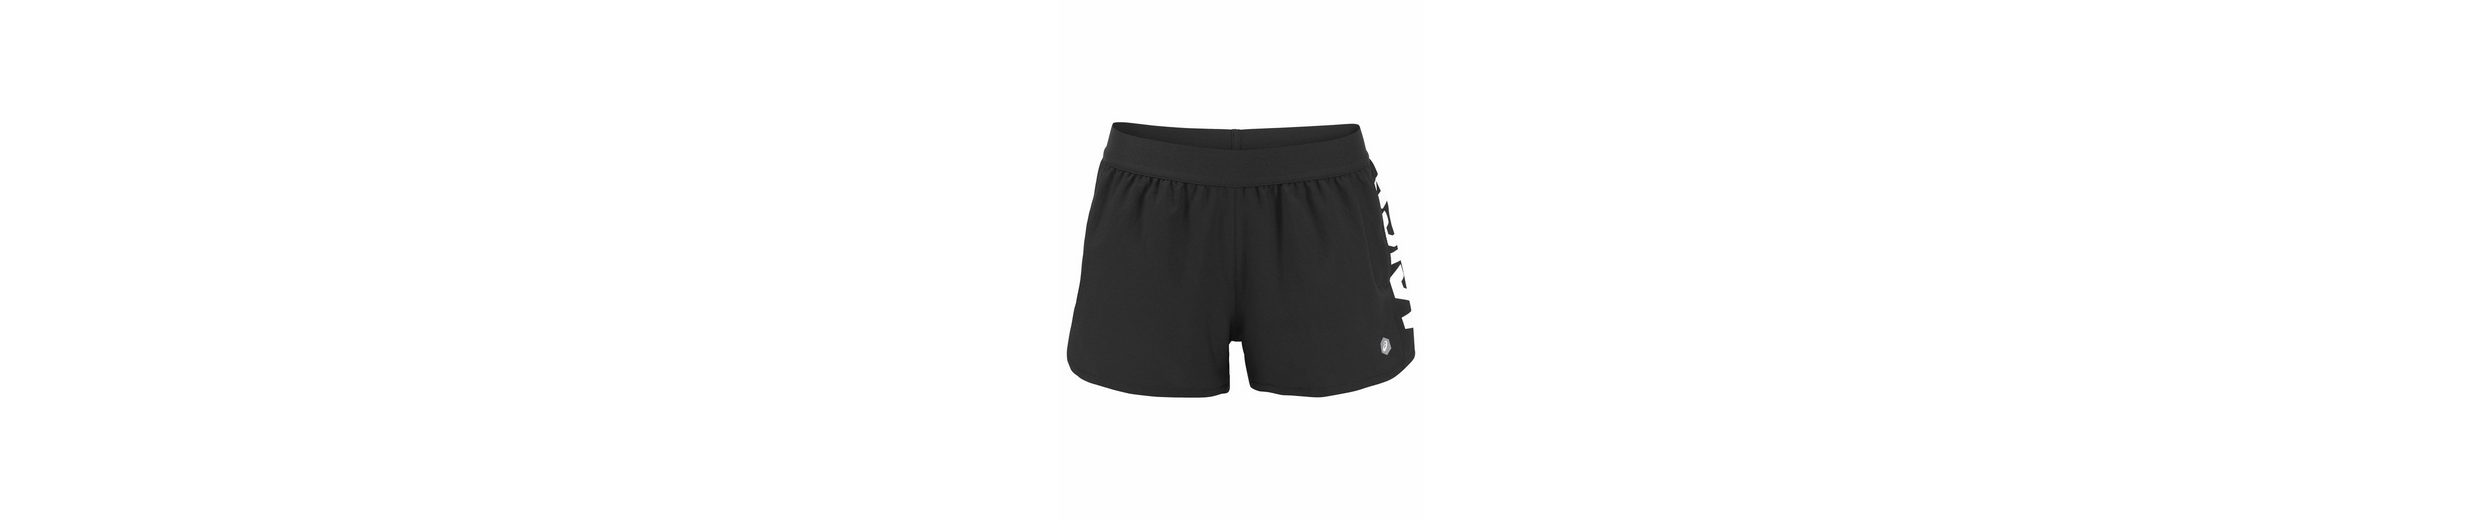 PERFORMANCE Asics PERFORMANCE Asics Shorts Shorts Asics SHORT PERFORMANCE Shorts SHORT 71P6qt